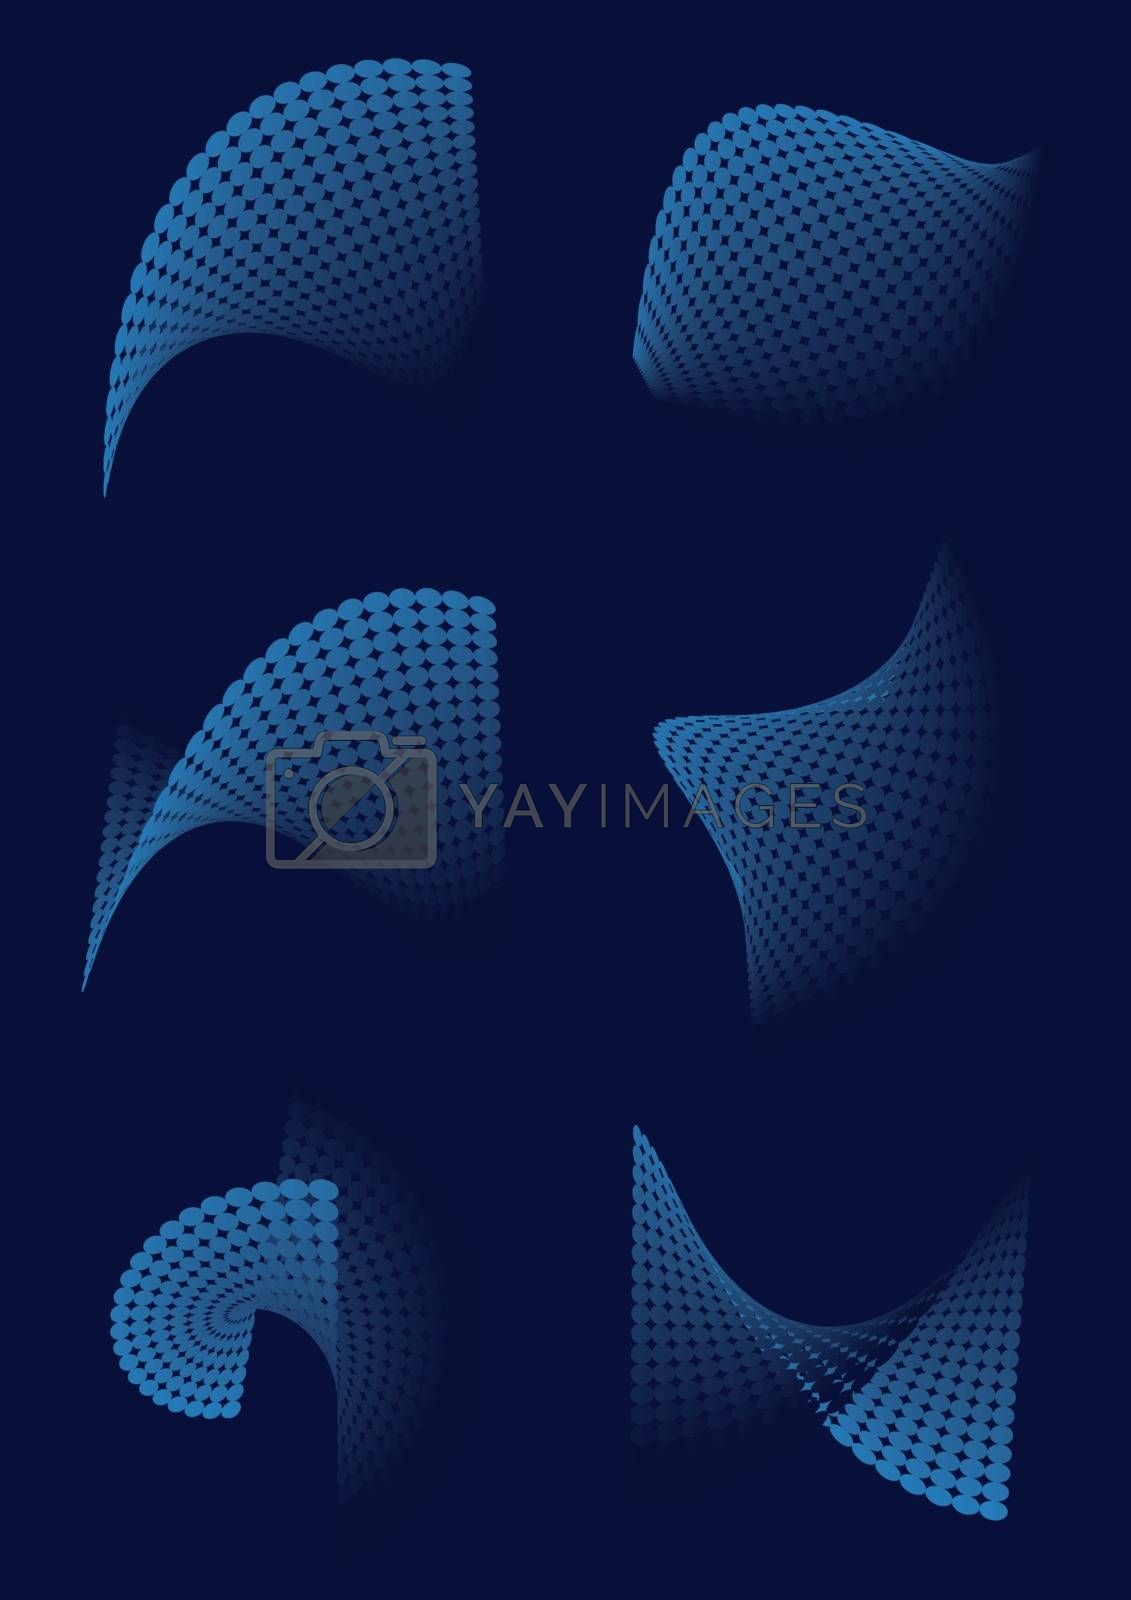 Abstract futuristic neon blue 3D shapes made of circle matrix. Geometric wavy twisted planes on a blue background. Vector illustration for cover, brochure, banner, leaflet, poster